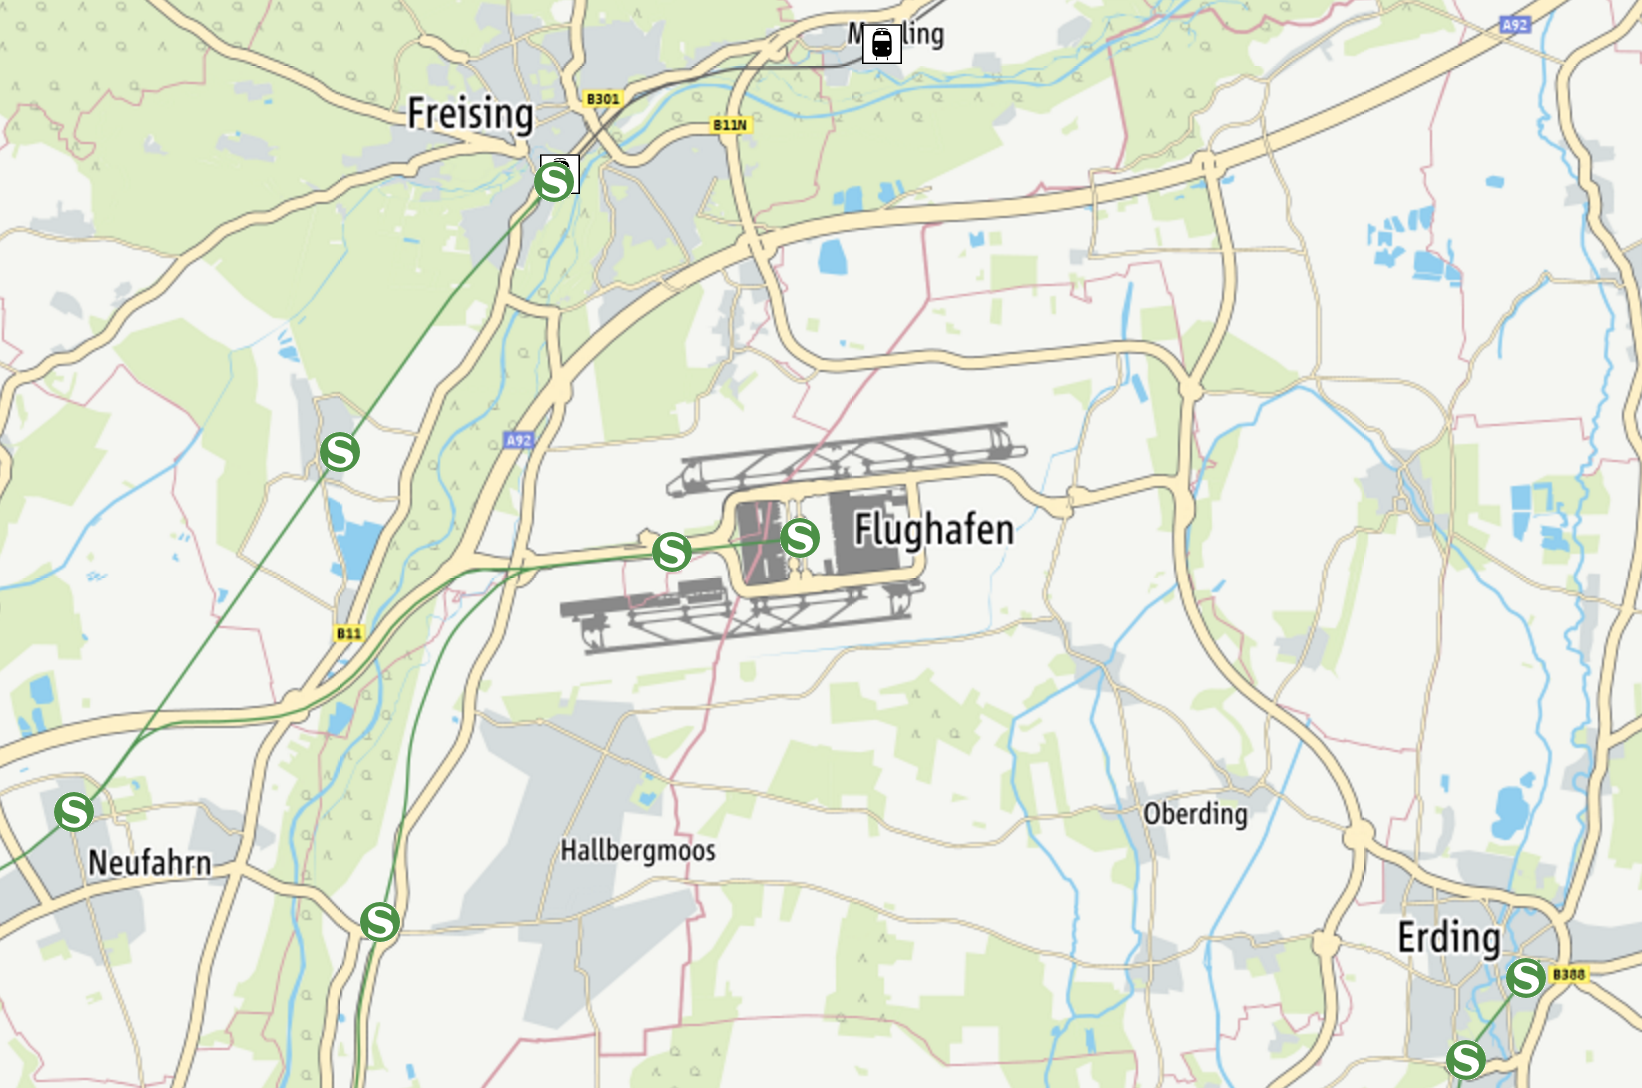 MVV map of Munich airport S-bahn stops